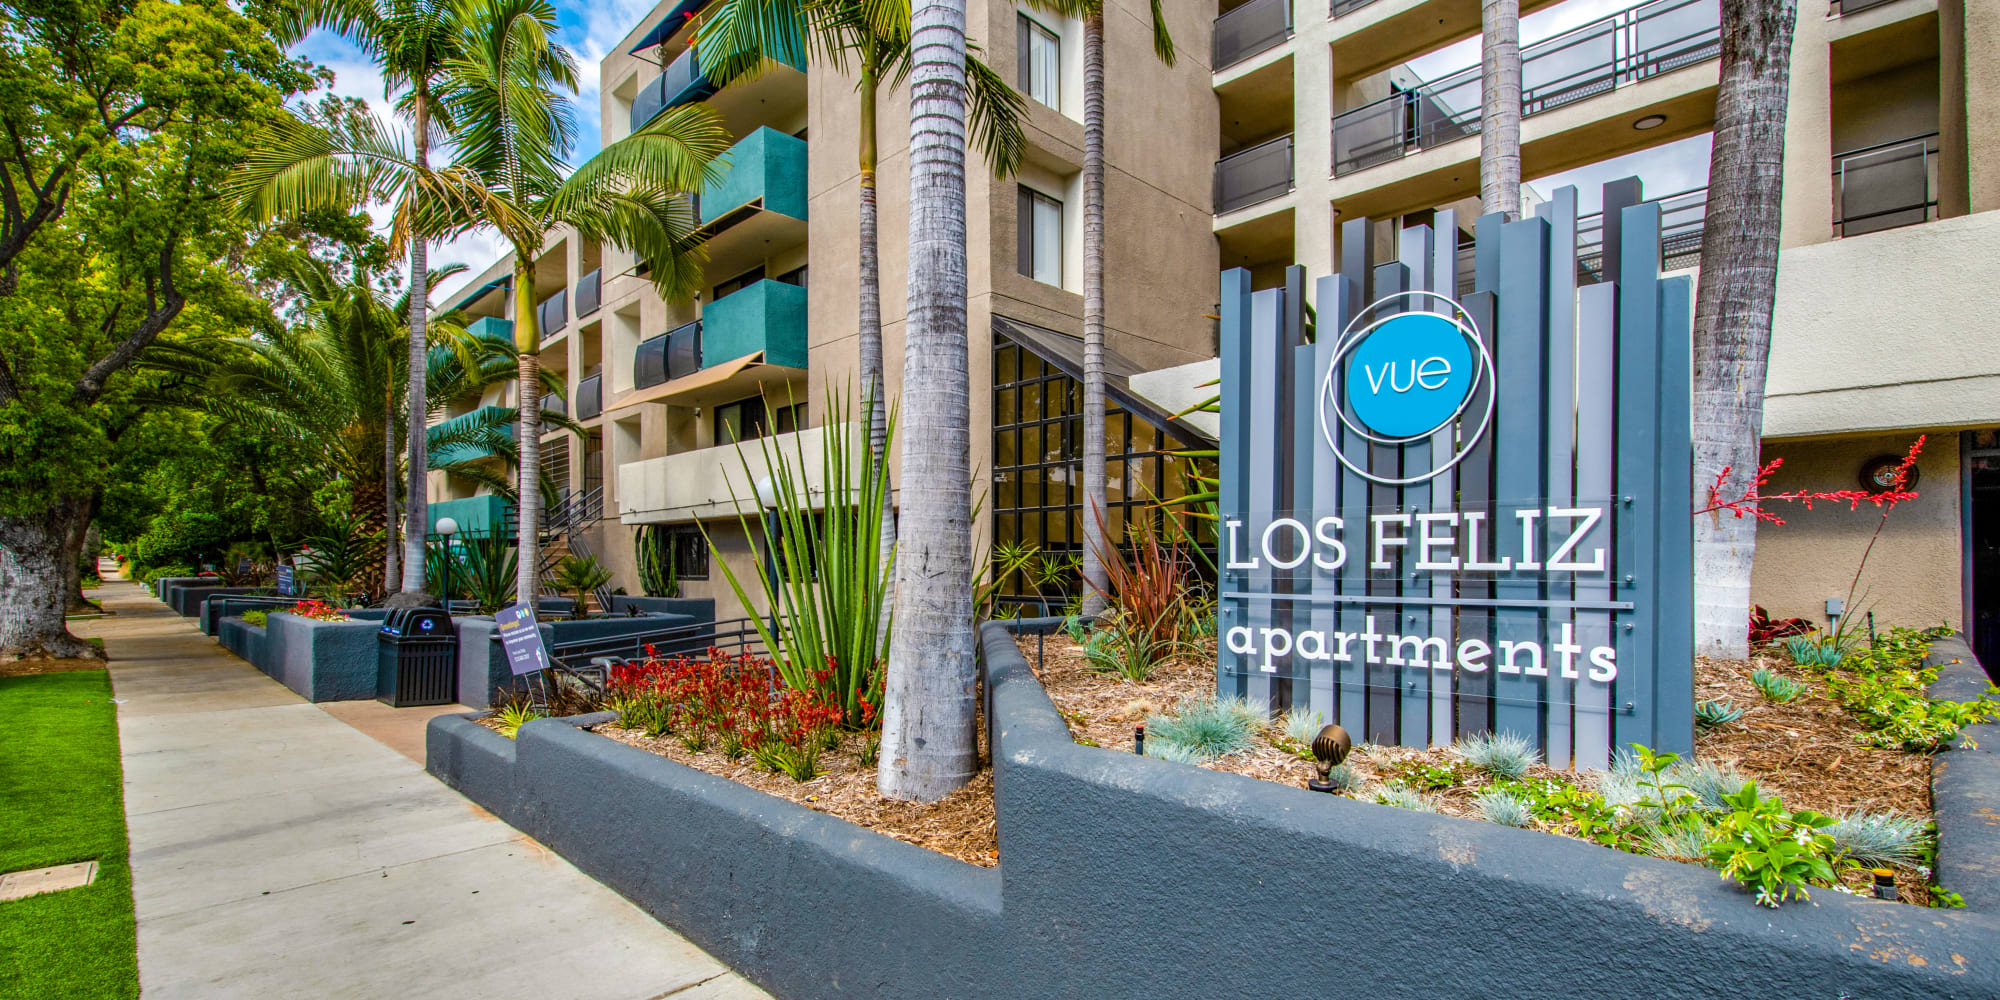 Our monument sign welcoming residents and guests to Vue Los Feliz in Los Angeles, California